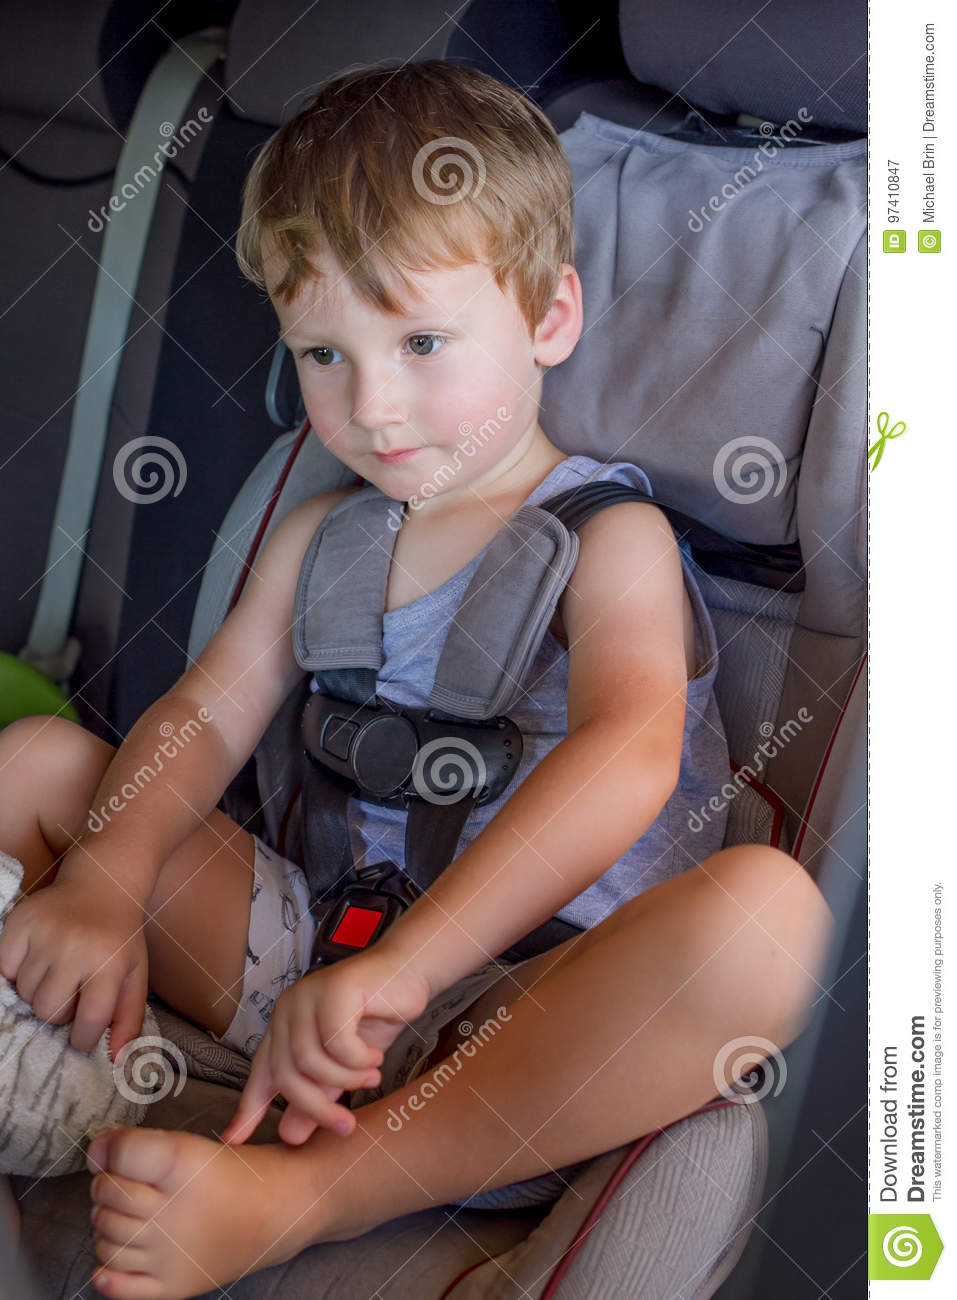 Portrait Of Cute Toddler Boy Sitting In Car Seat Child Transportation Safety